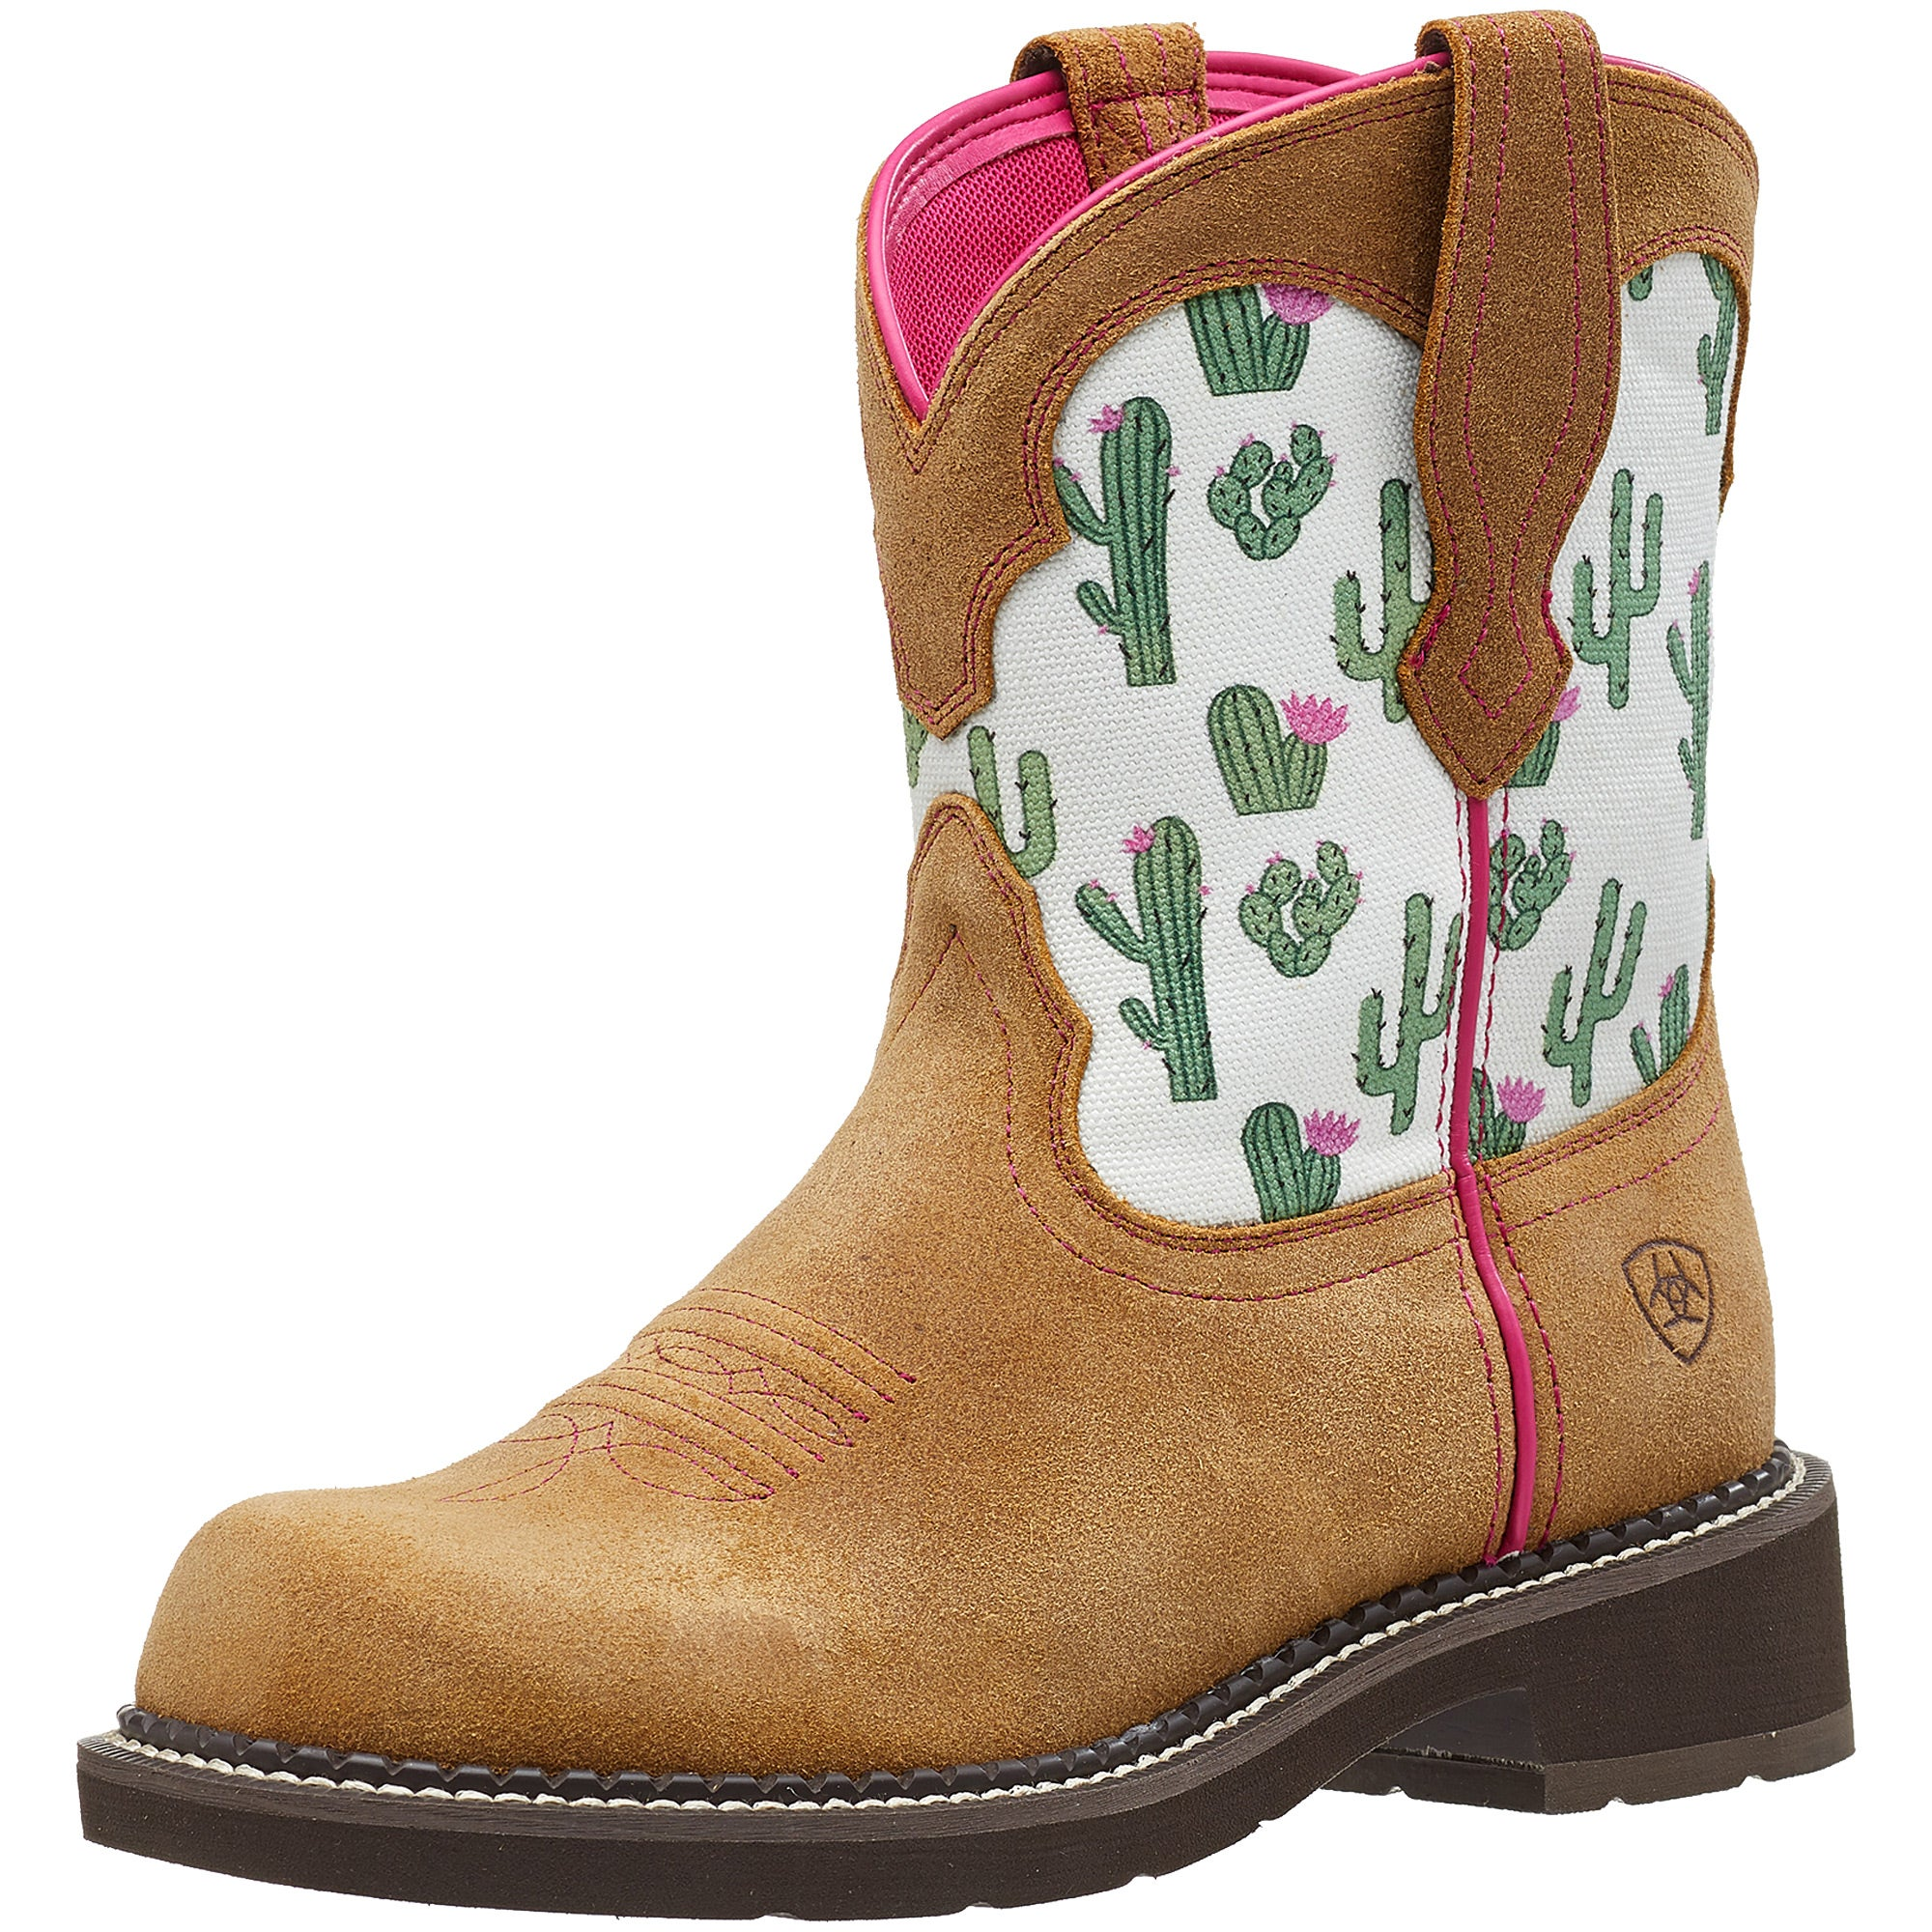 3fb7f493f21 Ariat Fatbaby Heritage Cactus Women's Cowboy Boots - Riding Warehouse